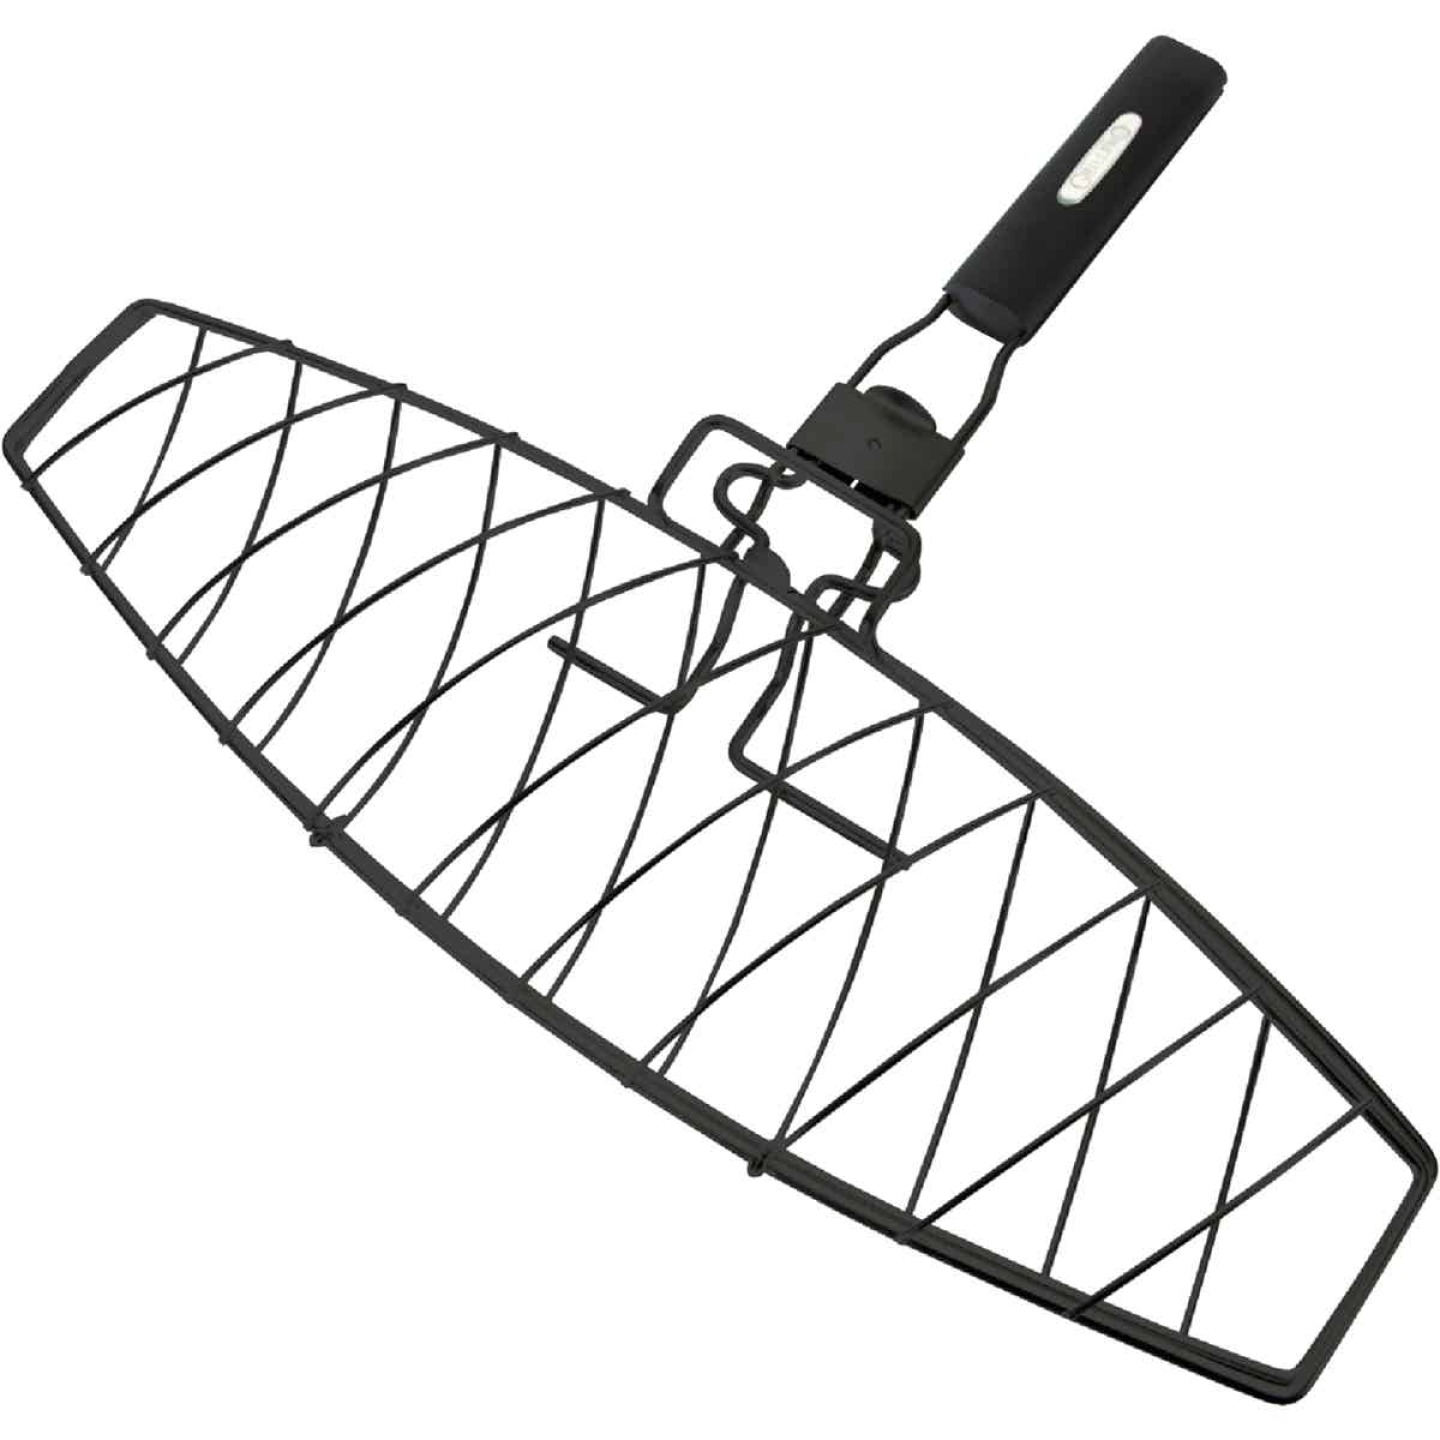 GrillPro 6.25 In. W. Steel Grill Fish Basket Image 1